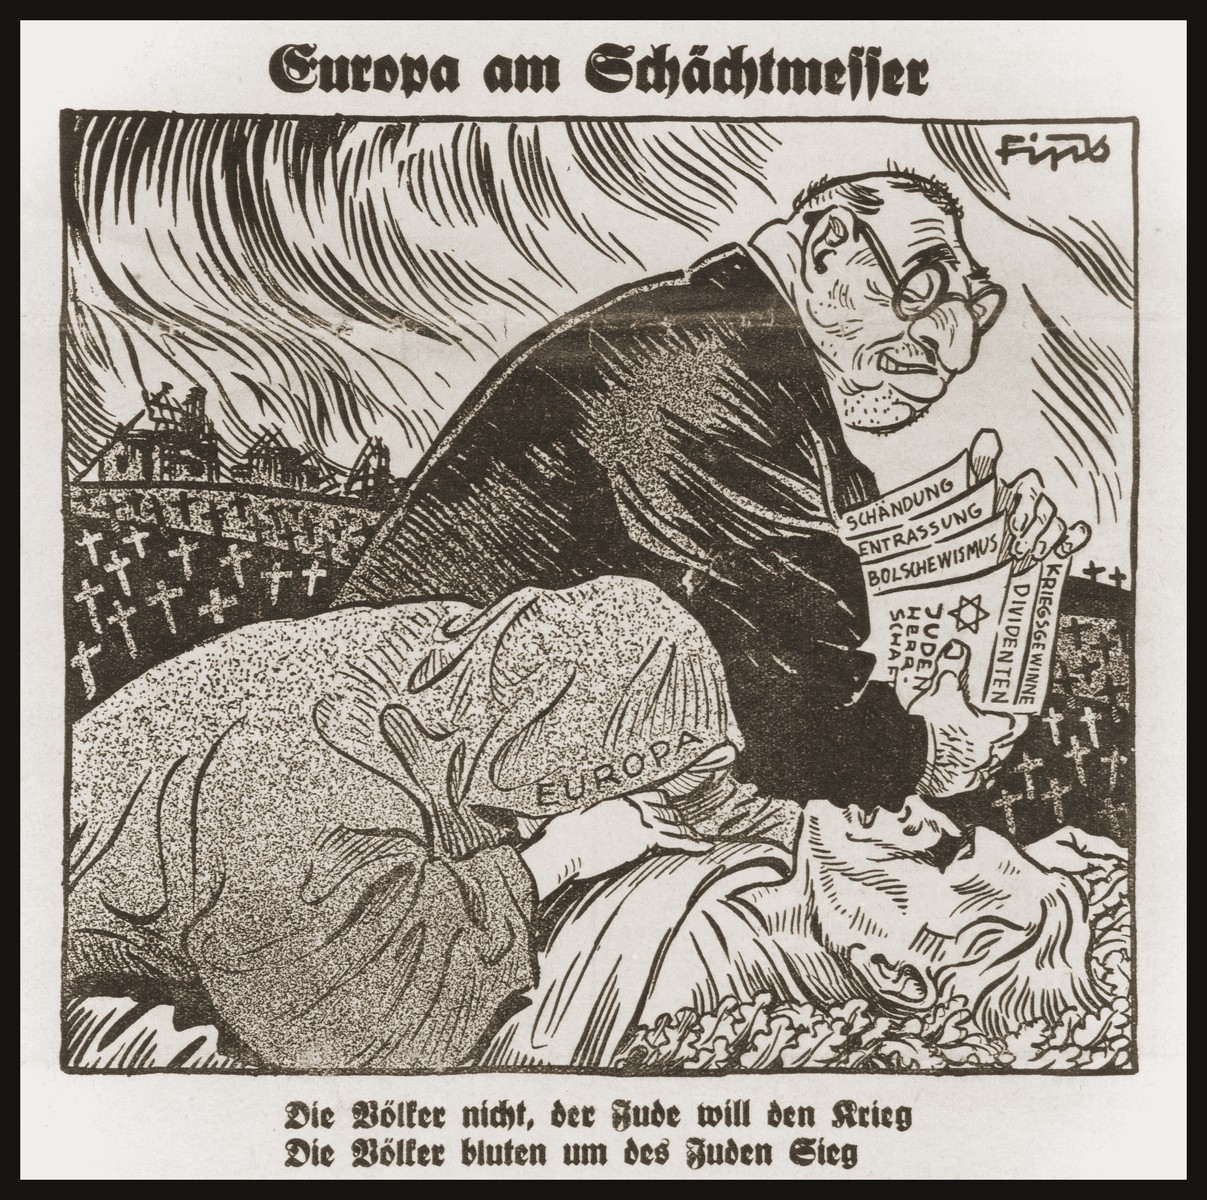 """Caricature from Der Stuermer depicting the Jew as the inciter of world war.    The headline reads, """"Who is the Enemy?/ Incitement to world war and the Jewish Protocol of Basel/ Europe at the slaughterer's knife blade.""""  The caption under the caricature reads, """"The Jew wants the war, the peoples do not/ The people bleed and the Jews are victorious."""""""